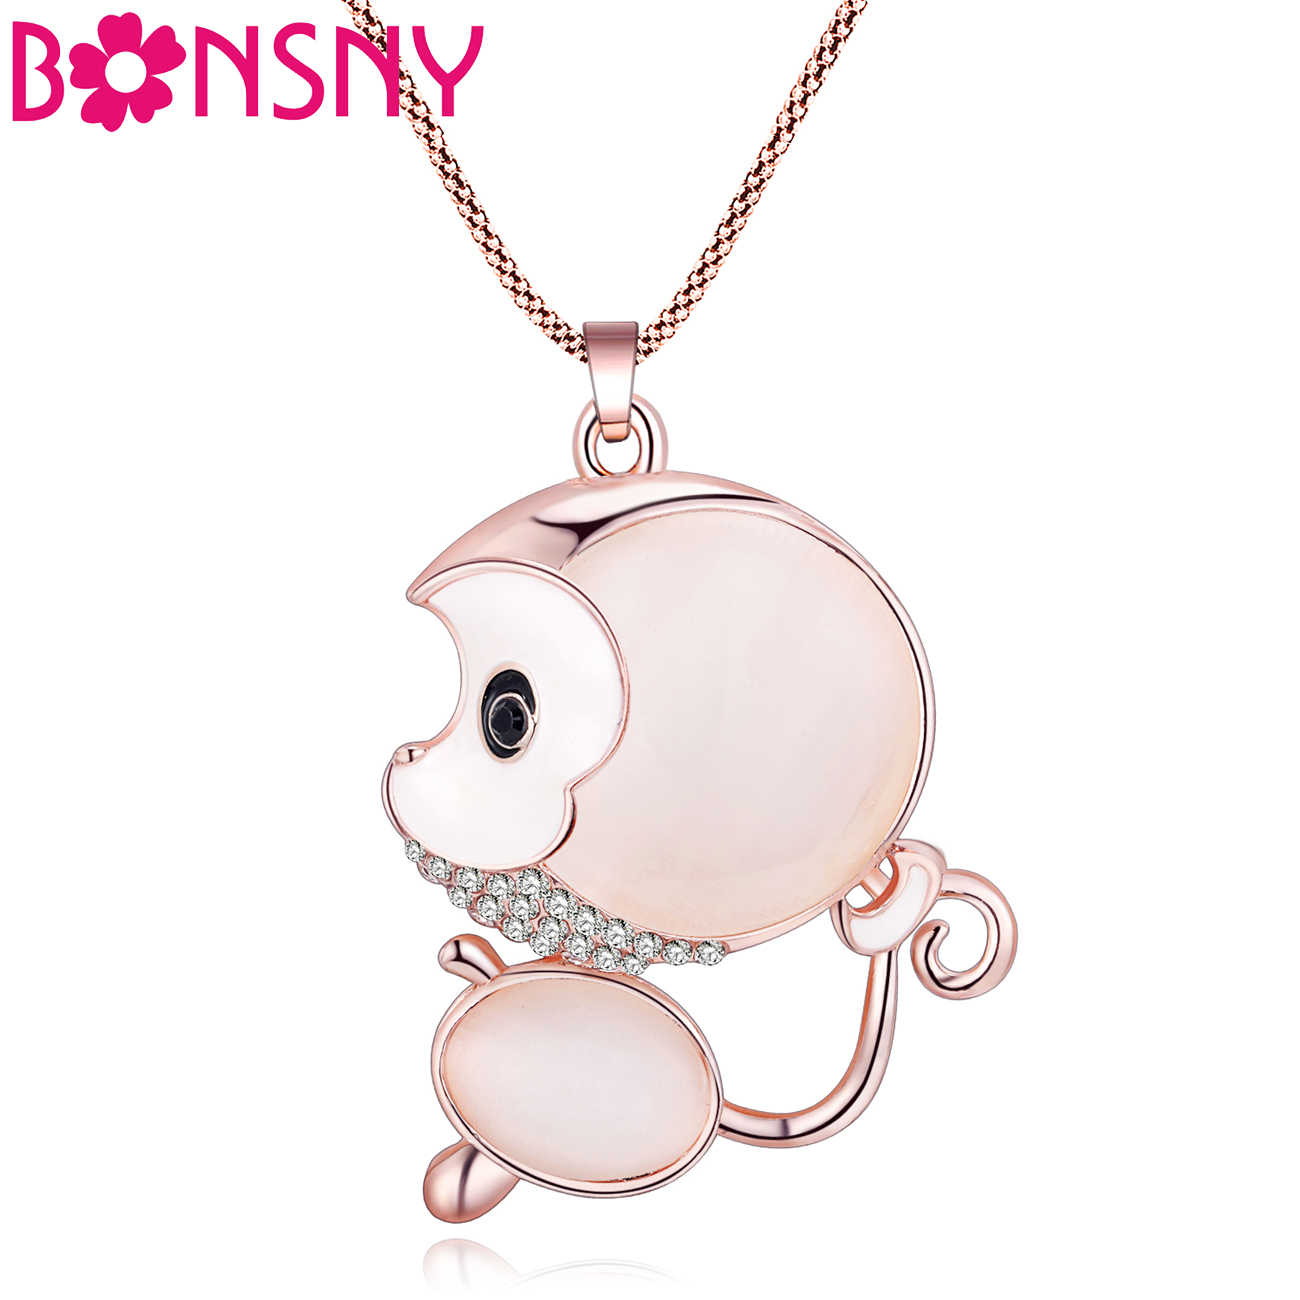 Bonsny Statement Opal Alloy Monkey Necklaces Pendants Long Rhinestone Chain Collar New Trendy Animal Jewelry For Women